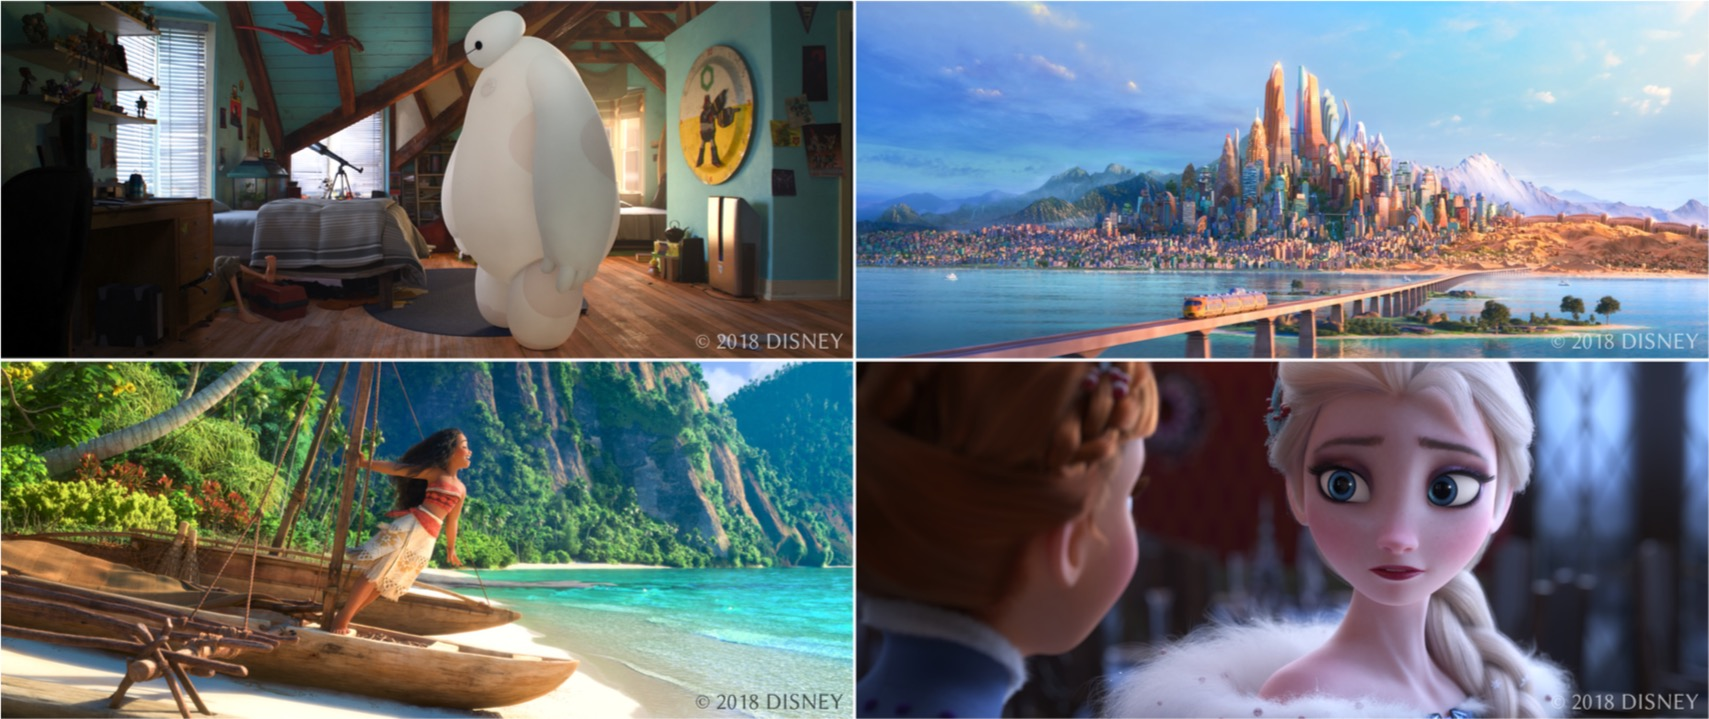 Image from paper Figure 1: Production frames from Big Hero 6 (upper left), Zootopia (upper right), Moana (bottom left), and Olaf's Frozen Adventure (bottom right), all rendered using Disney's Hyperion Renderer.